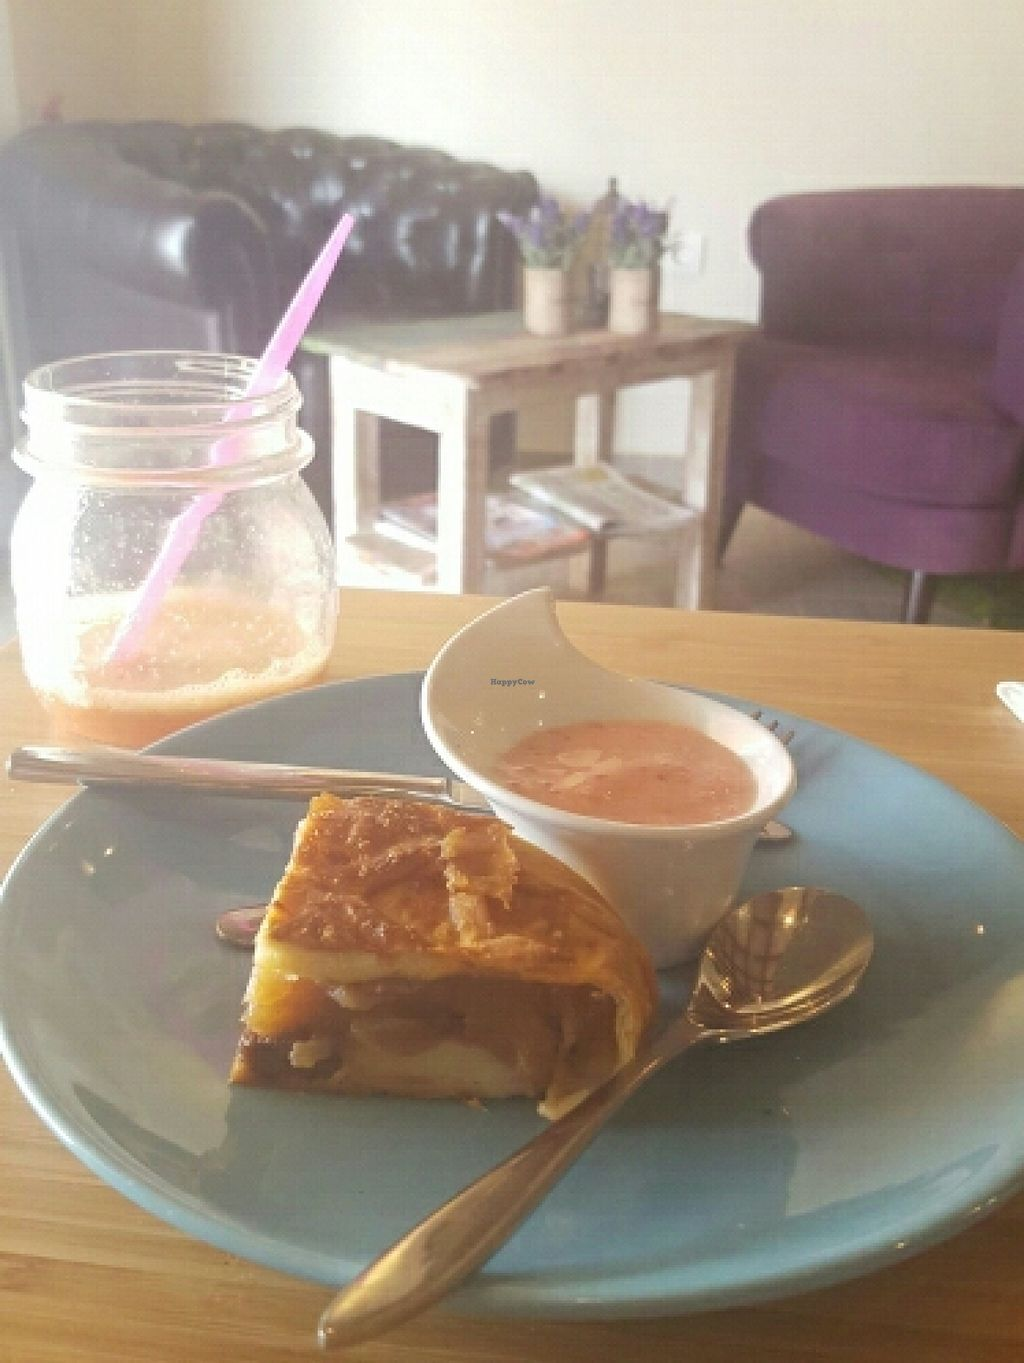 """Photo of Eco Eco  by <a href=""""/members/profile/nishakmatharu"""">nishakmatharu</a> <br/>homemade apple pie and icecreamr <br/> March 30, 2016  - <a href='/contact/abuse/image/71532/141929'>Report</a>"""